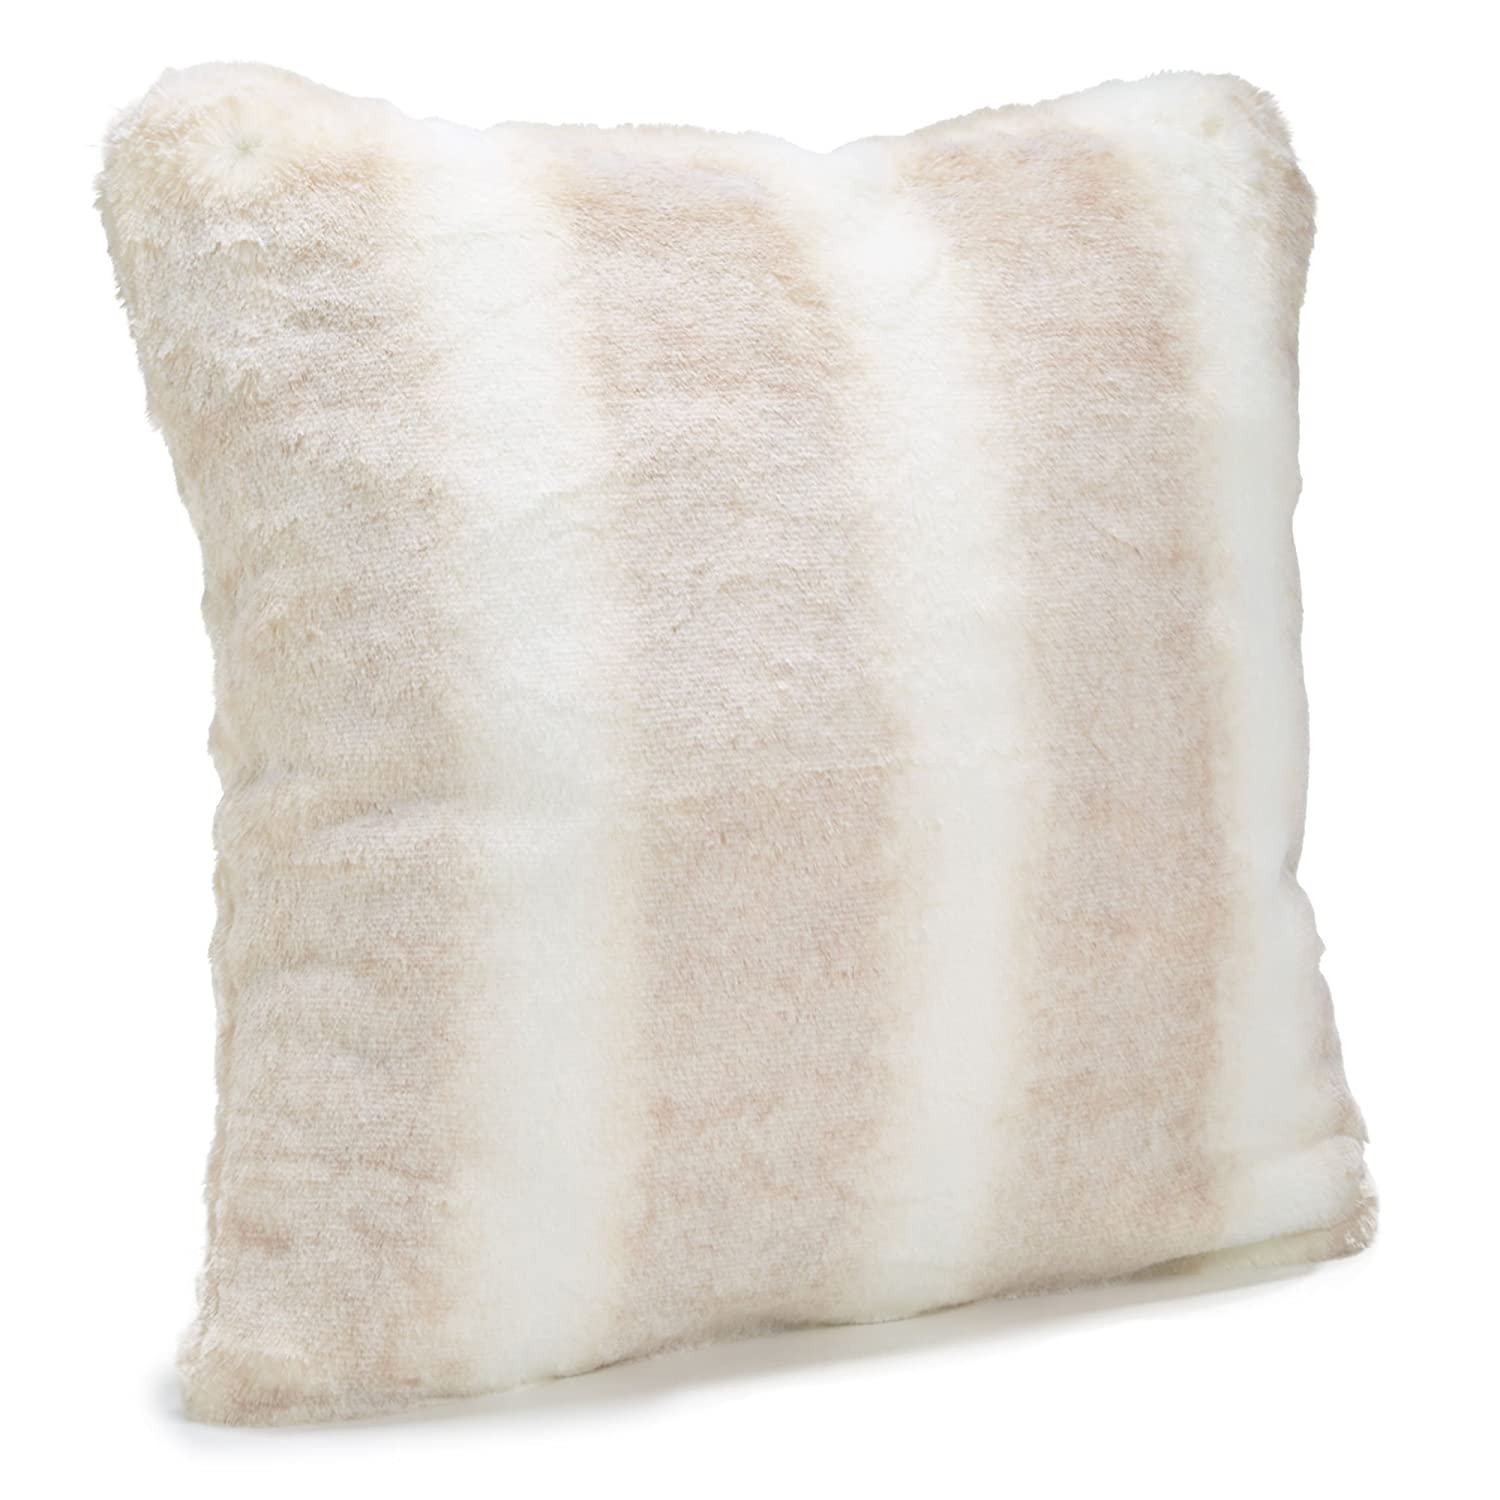 by Donna Salyers Available in standard size 18x18 and Euro size 24x24 Iced Mink Fabulous Furs: Faux Fur Luxury Pillow